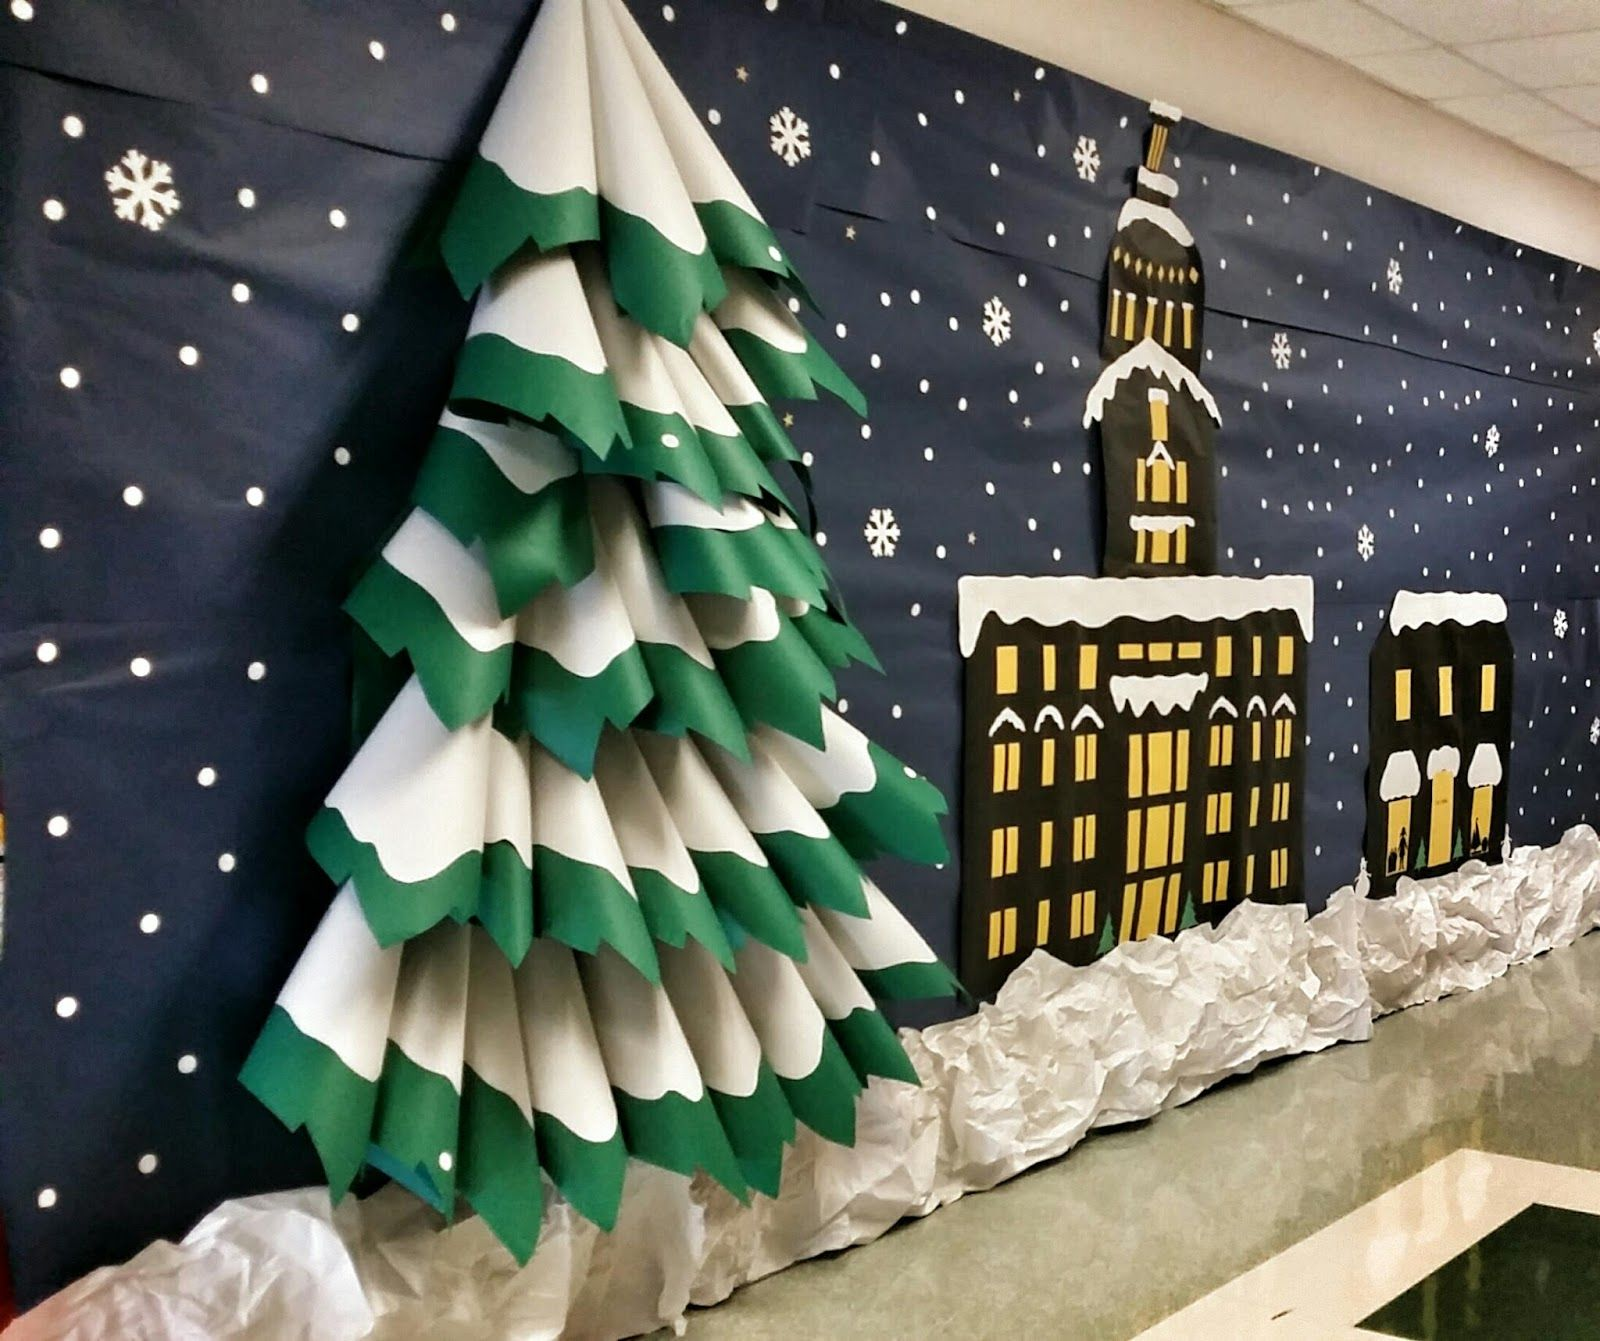 Polar Express Classroom Decoration Ideas ~ Learning as i sew bake cut and create polar express